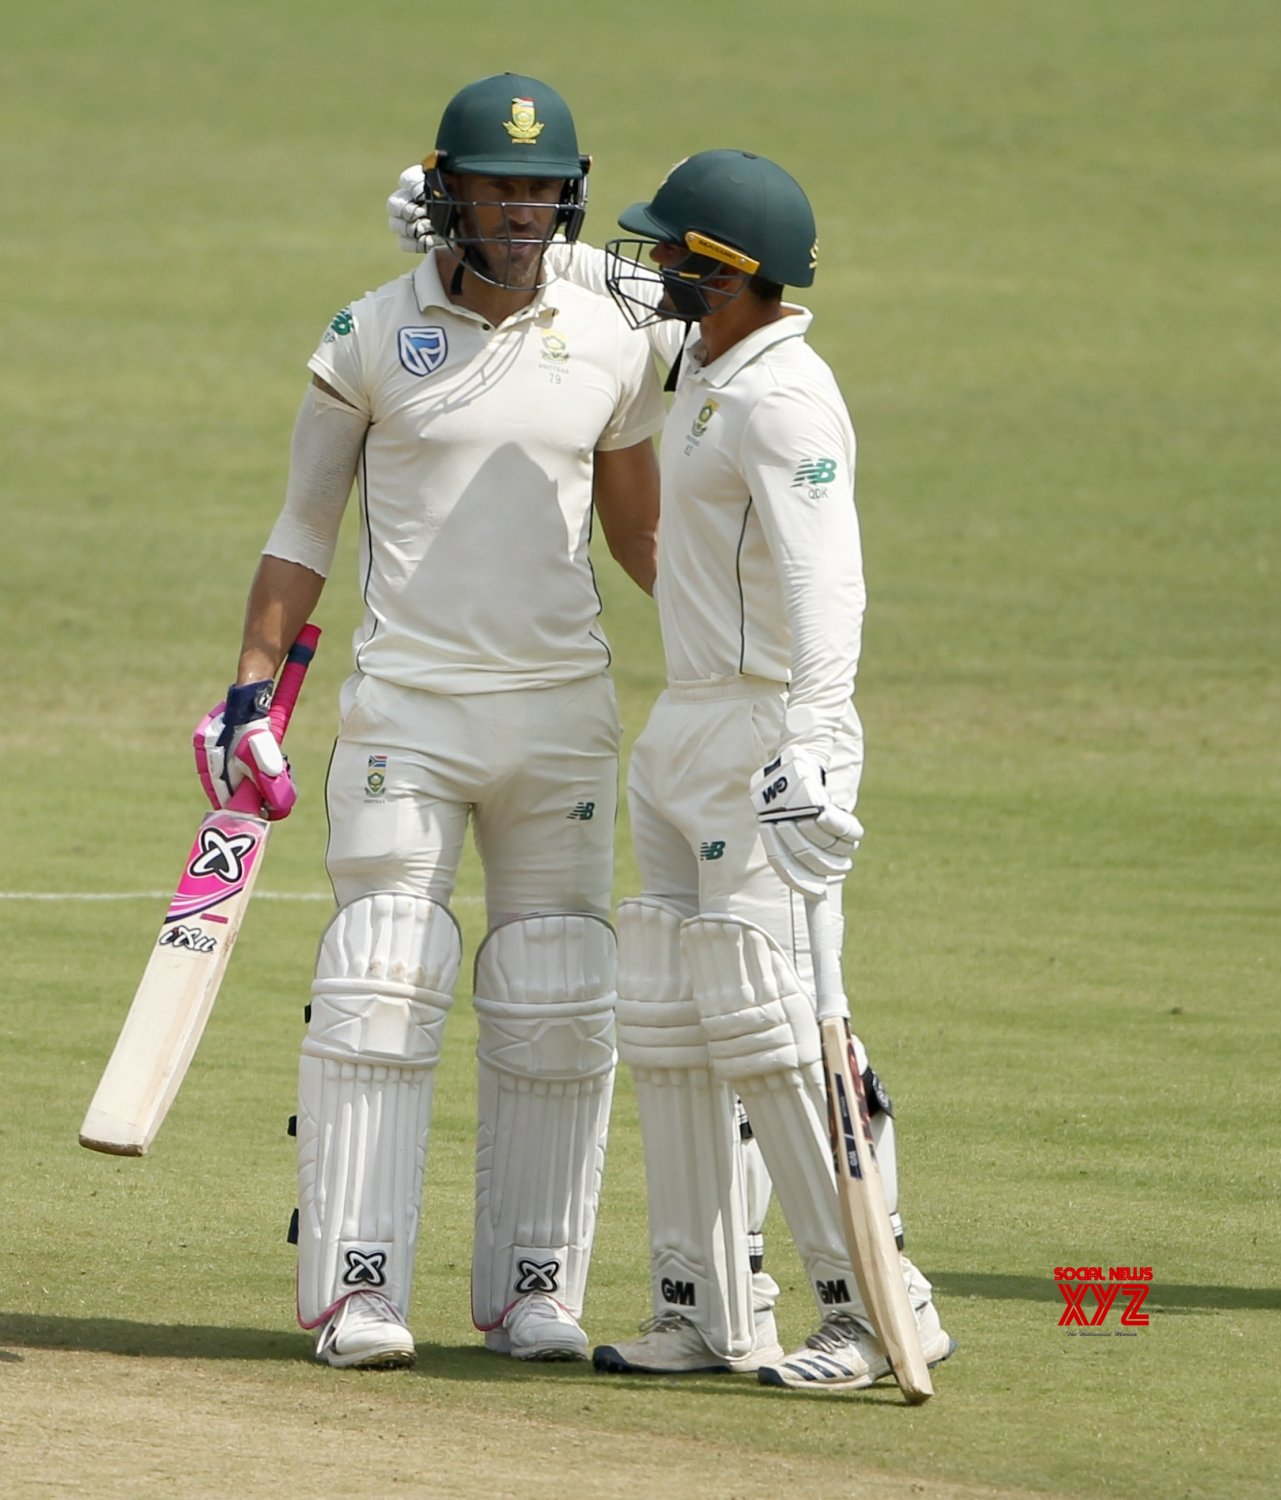 Pune: 2nd Test - India Vs South Africa - Day 3 (Batch - 7) #Gallery